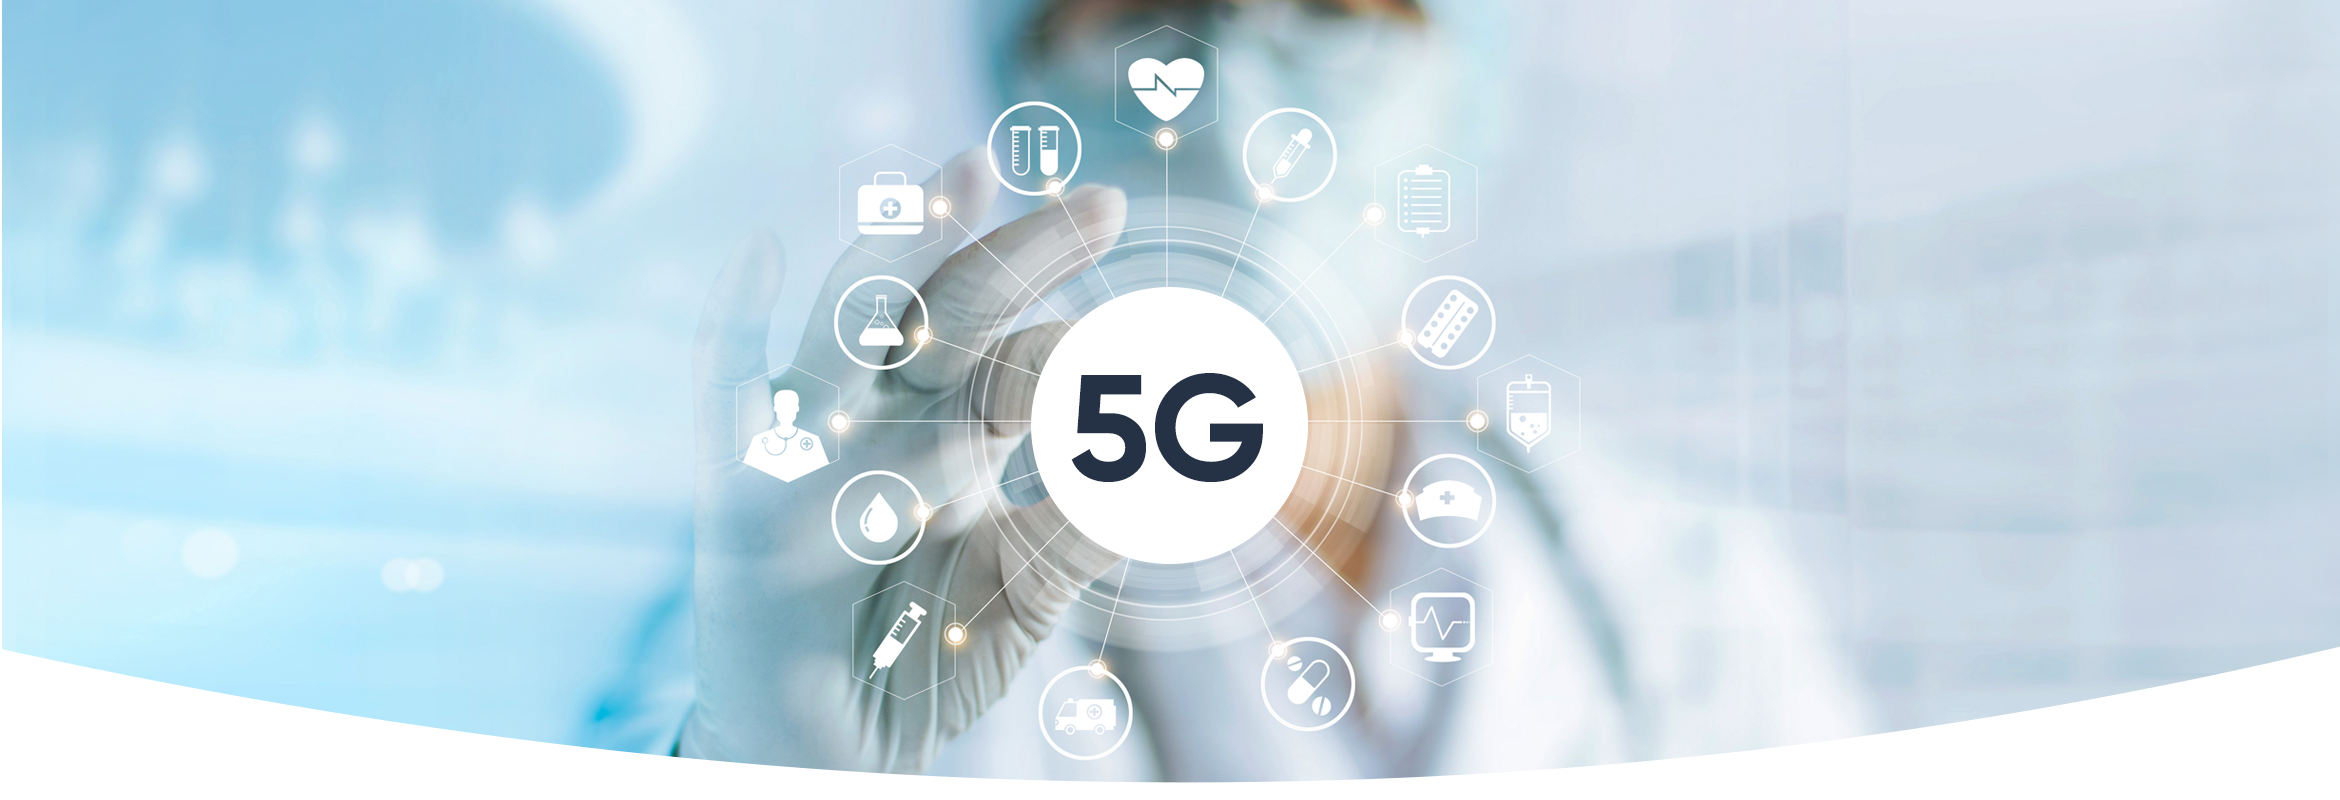 5G Use for Mental Health Treatment